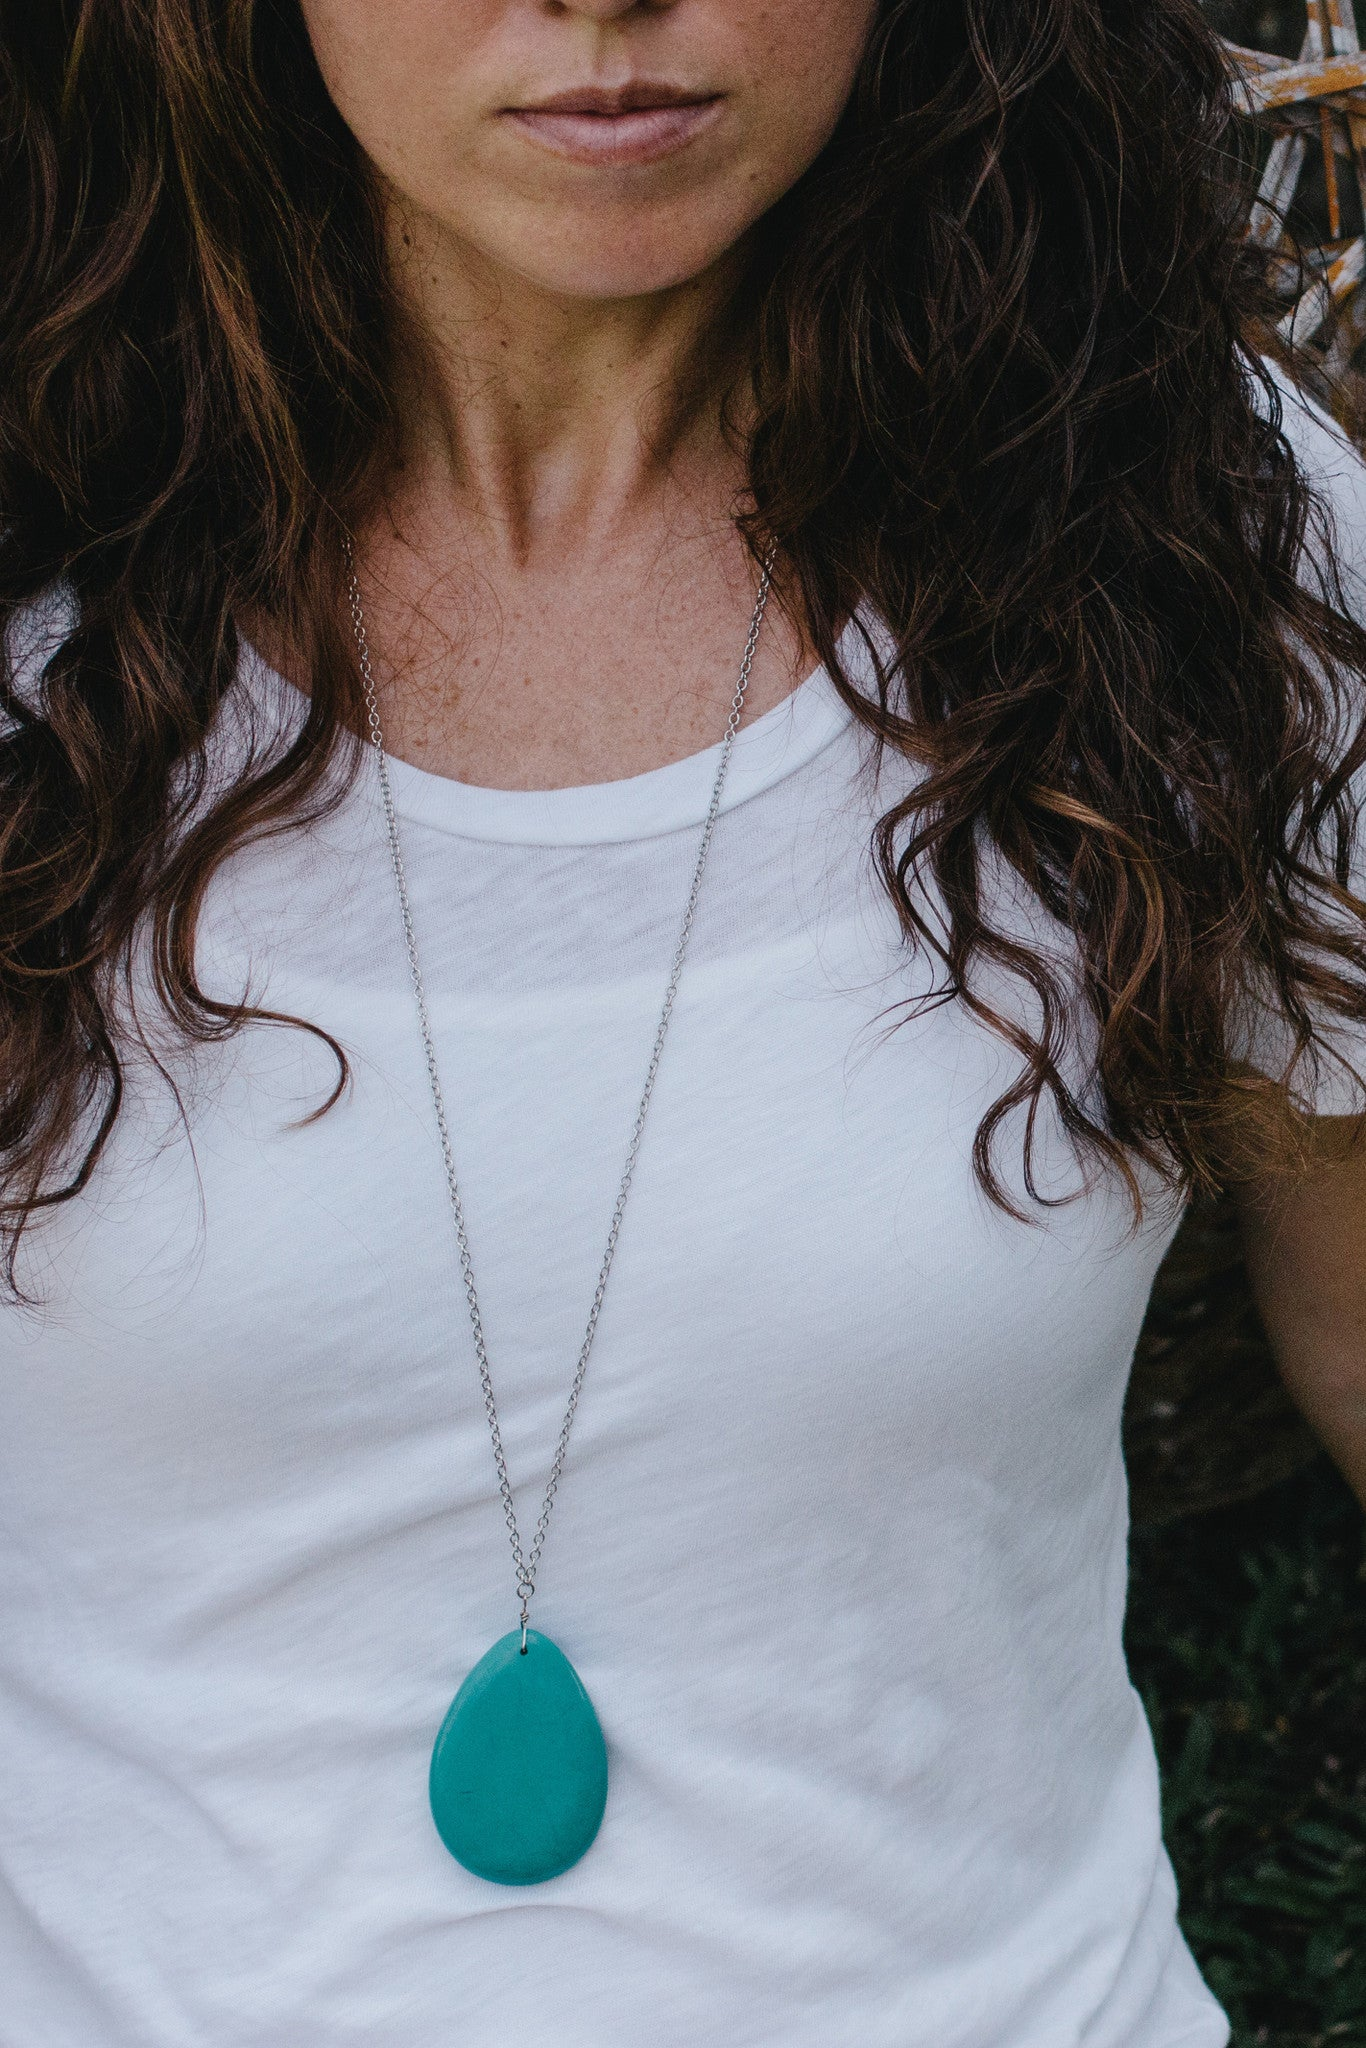 S647 - Turquoise Stone Necklace